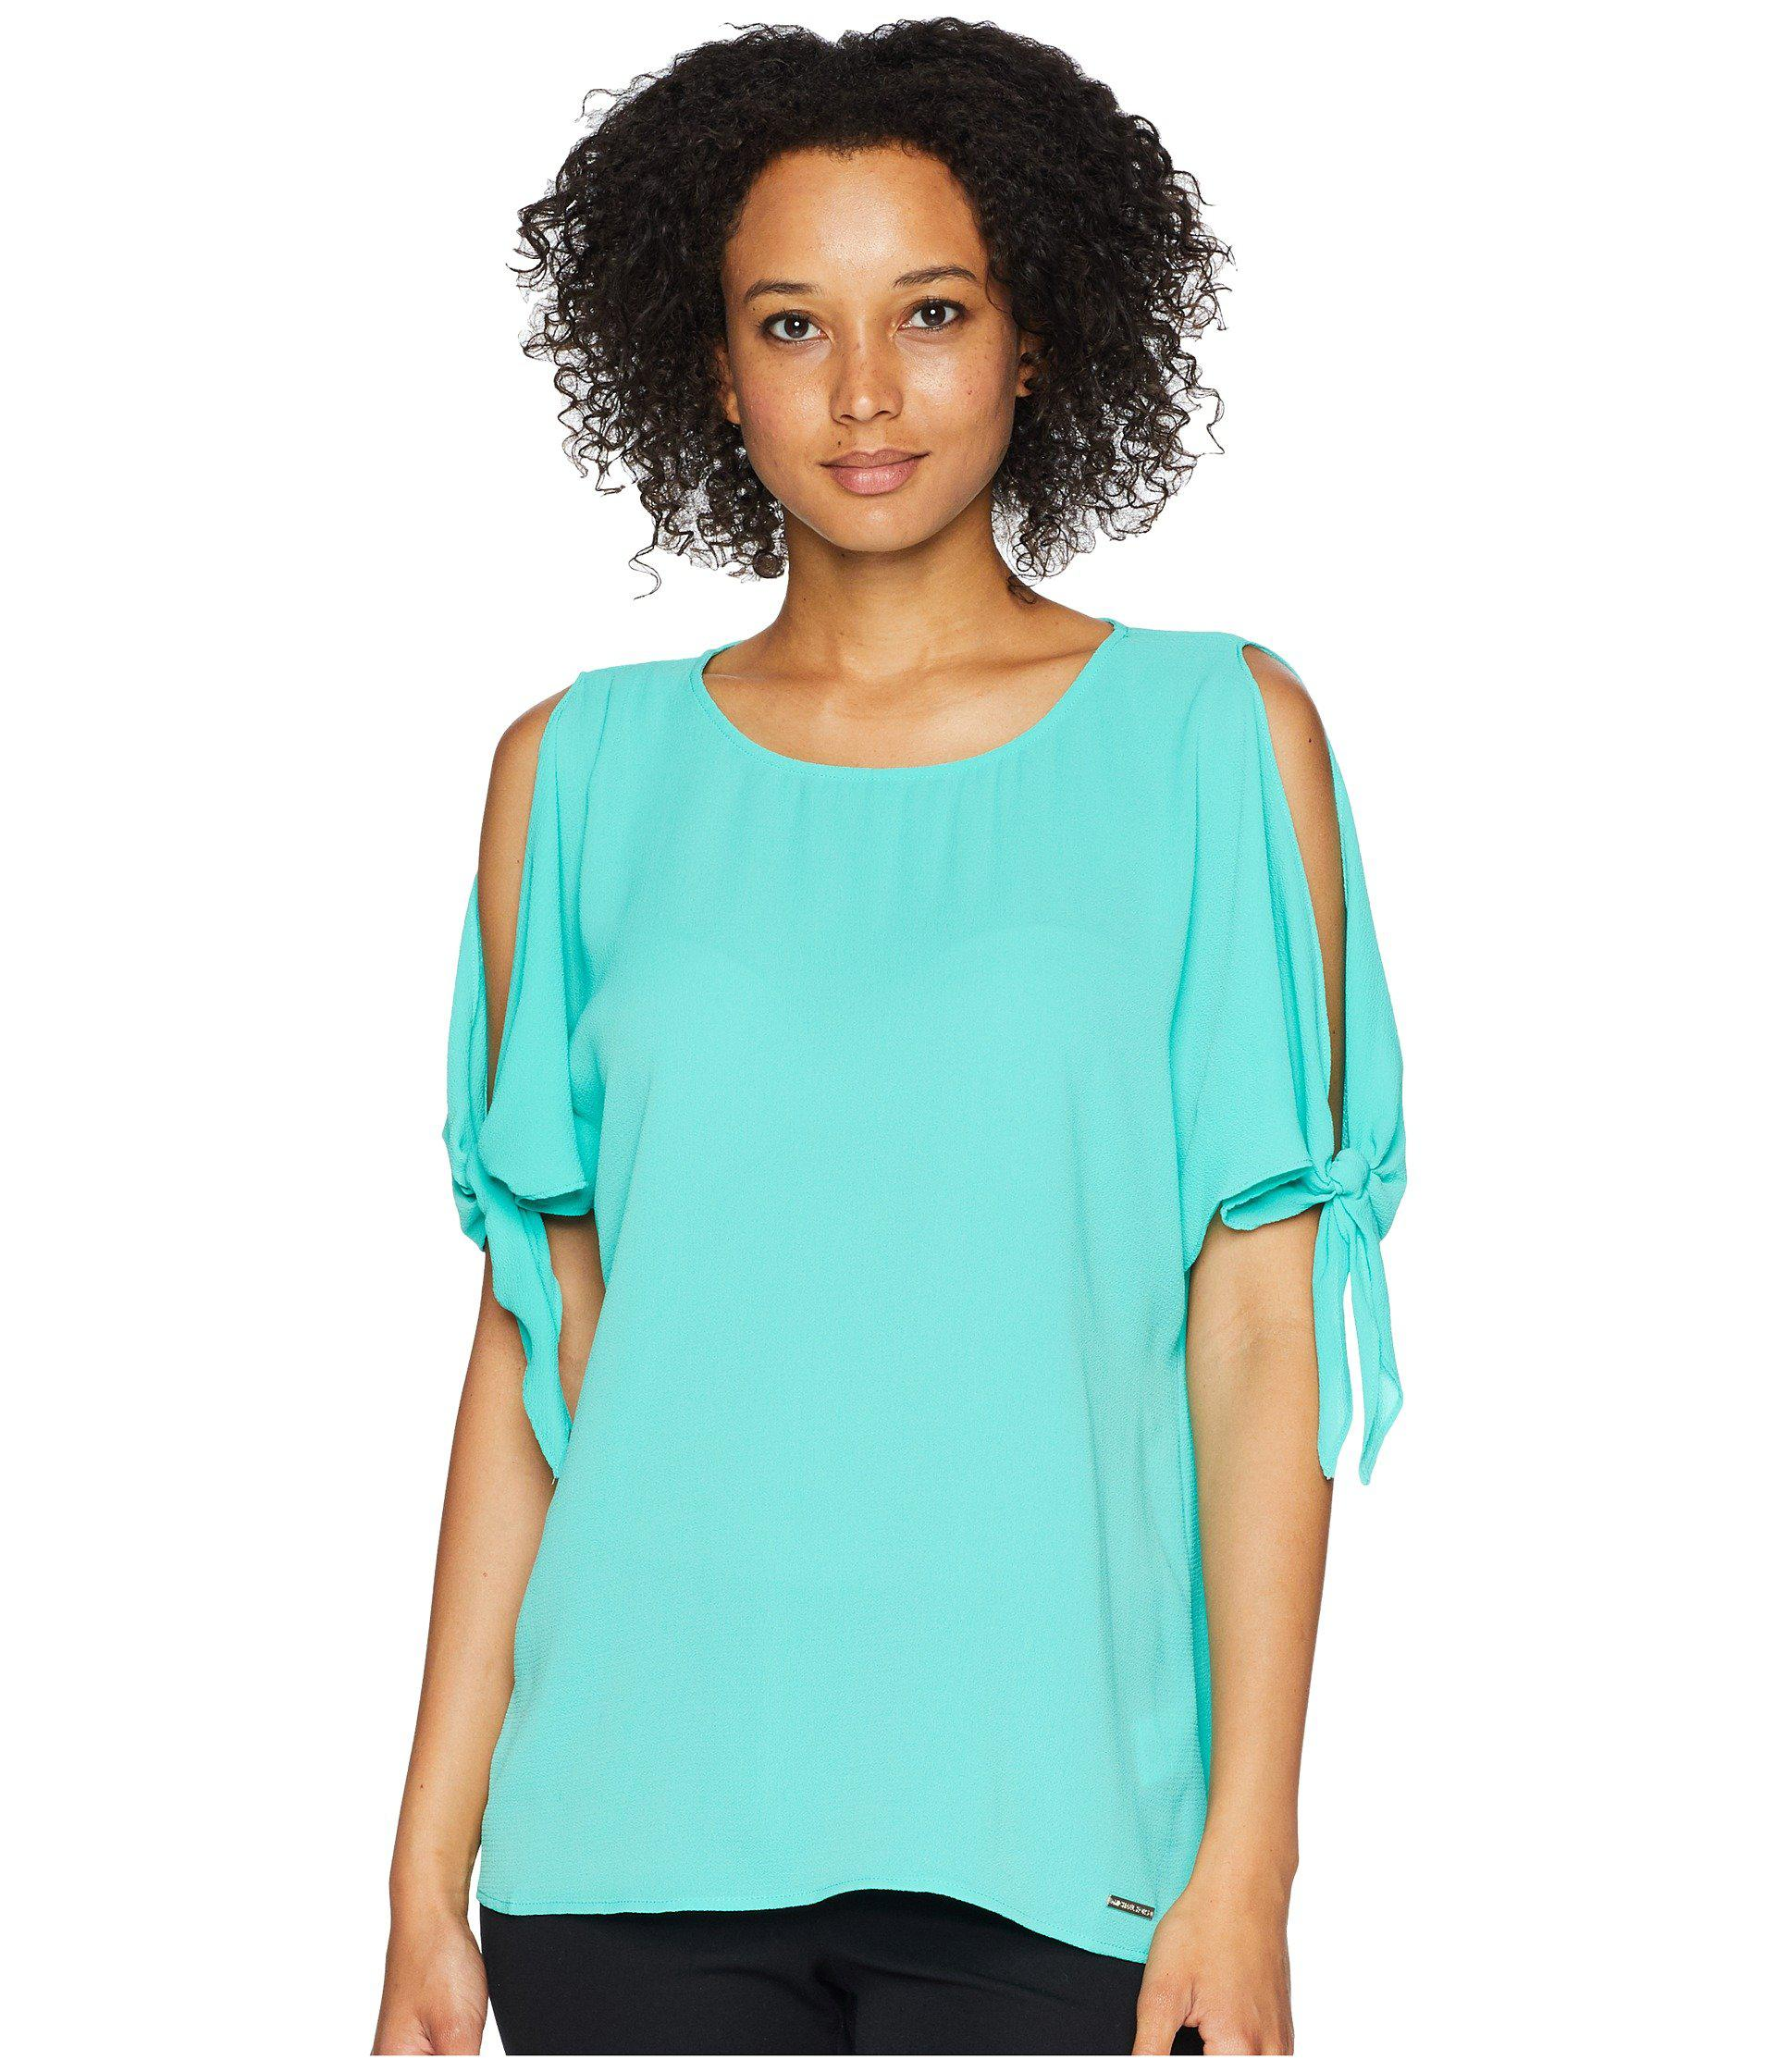 031bc212cefa4 Lyst - MICHAEL Michael Kors Cold Shoulder Bow Top in Blue - Save ...